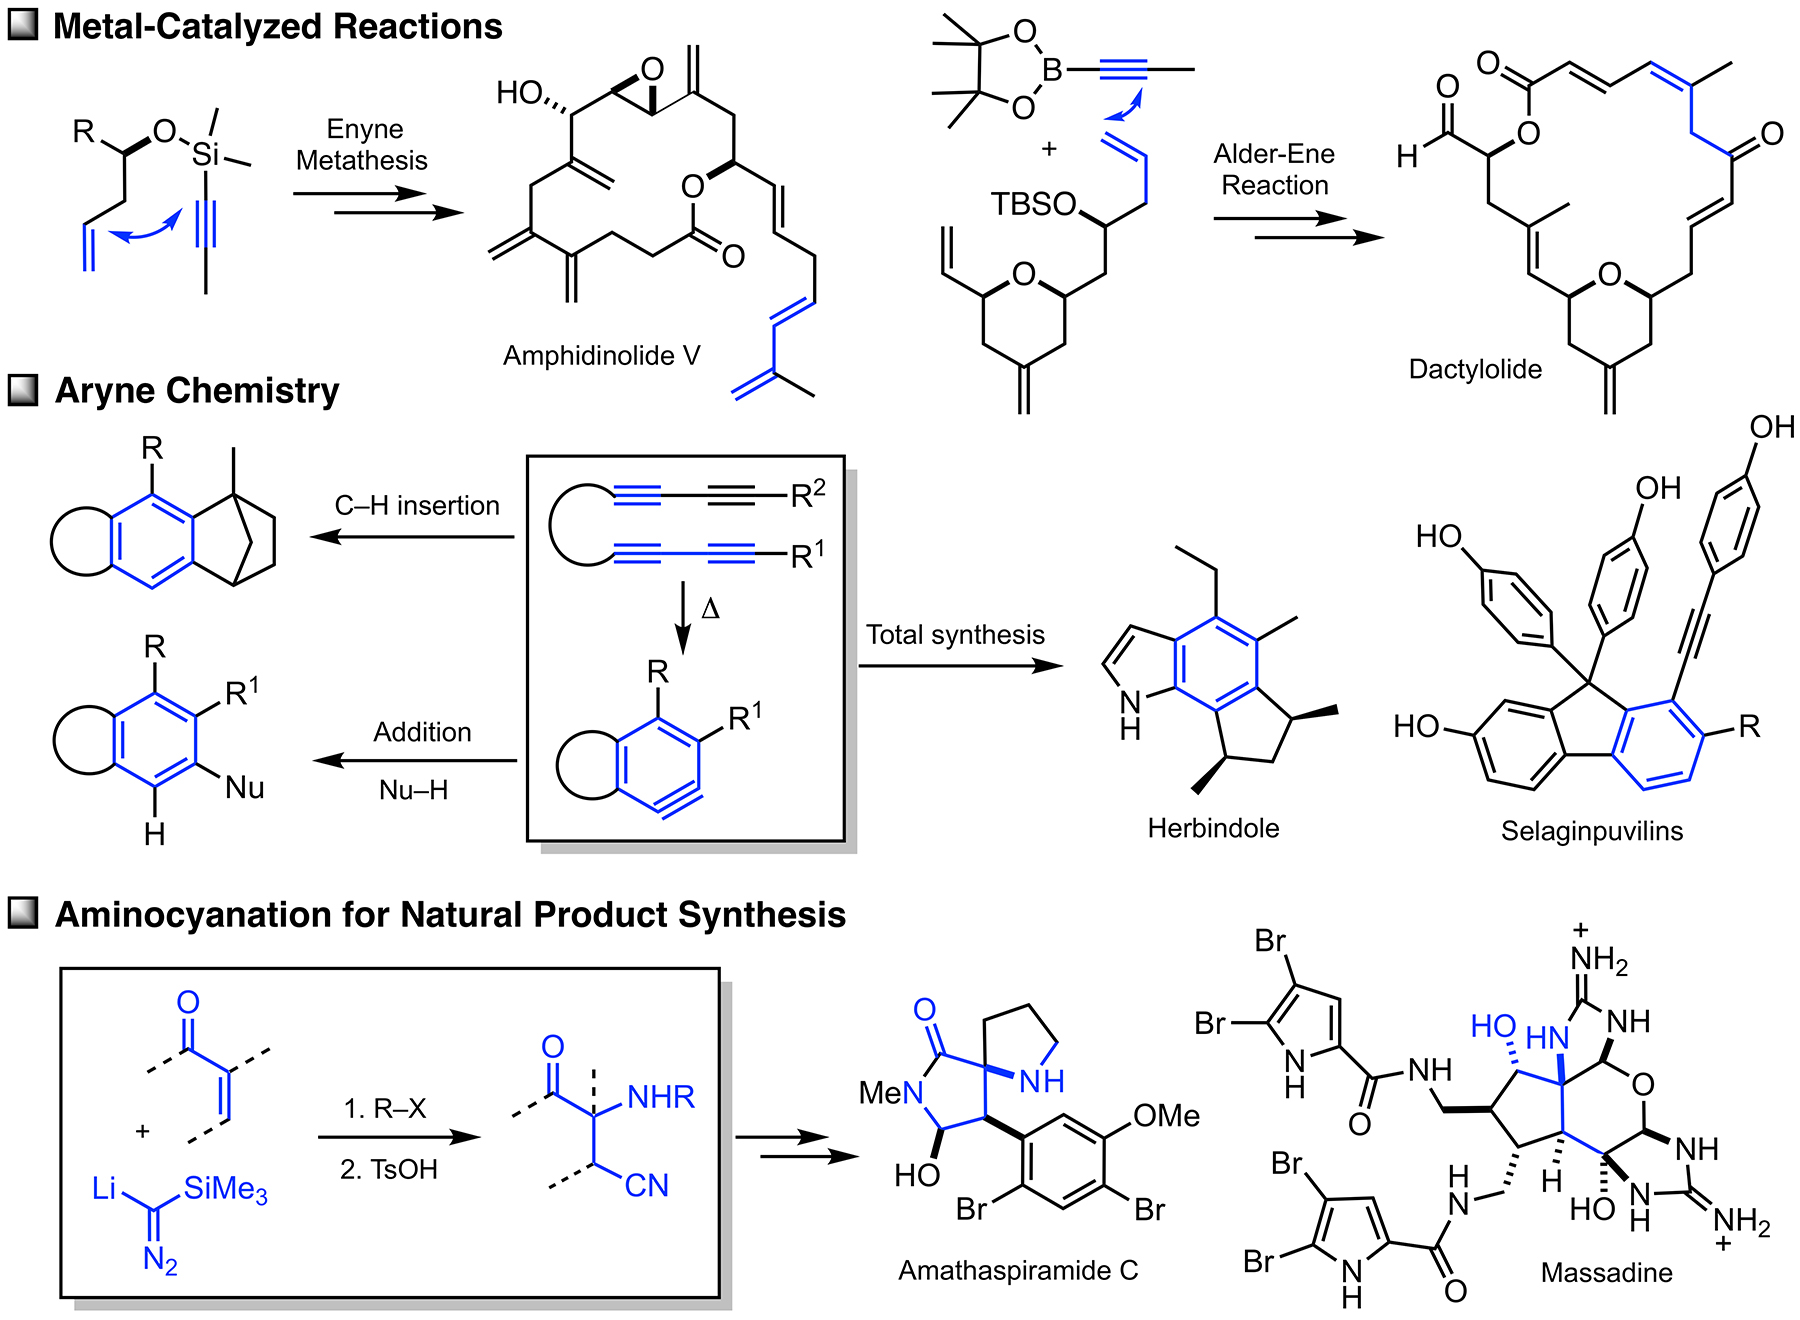 Prof. Lee's group has created several methods for the tandem syntehsis of natural products